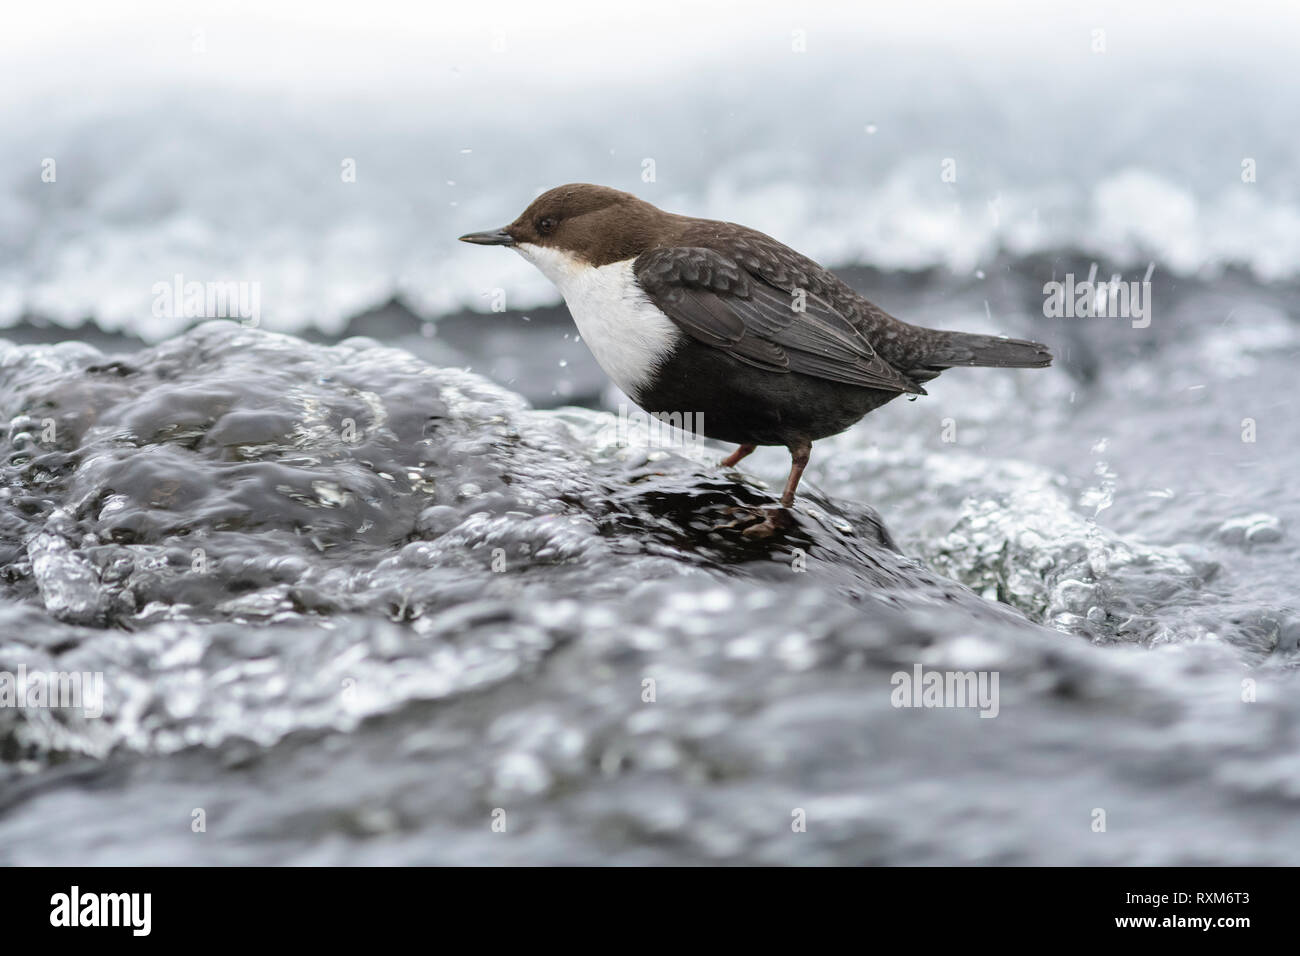 Black-bellied dipper standing in streaming water with ice on the shore, Kuusamo, Finland - Stock Image